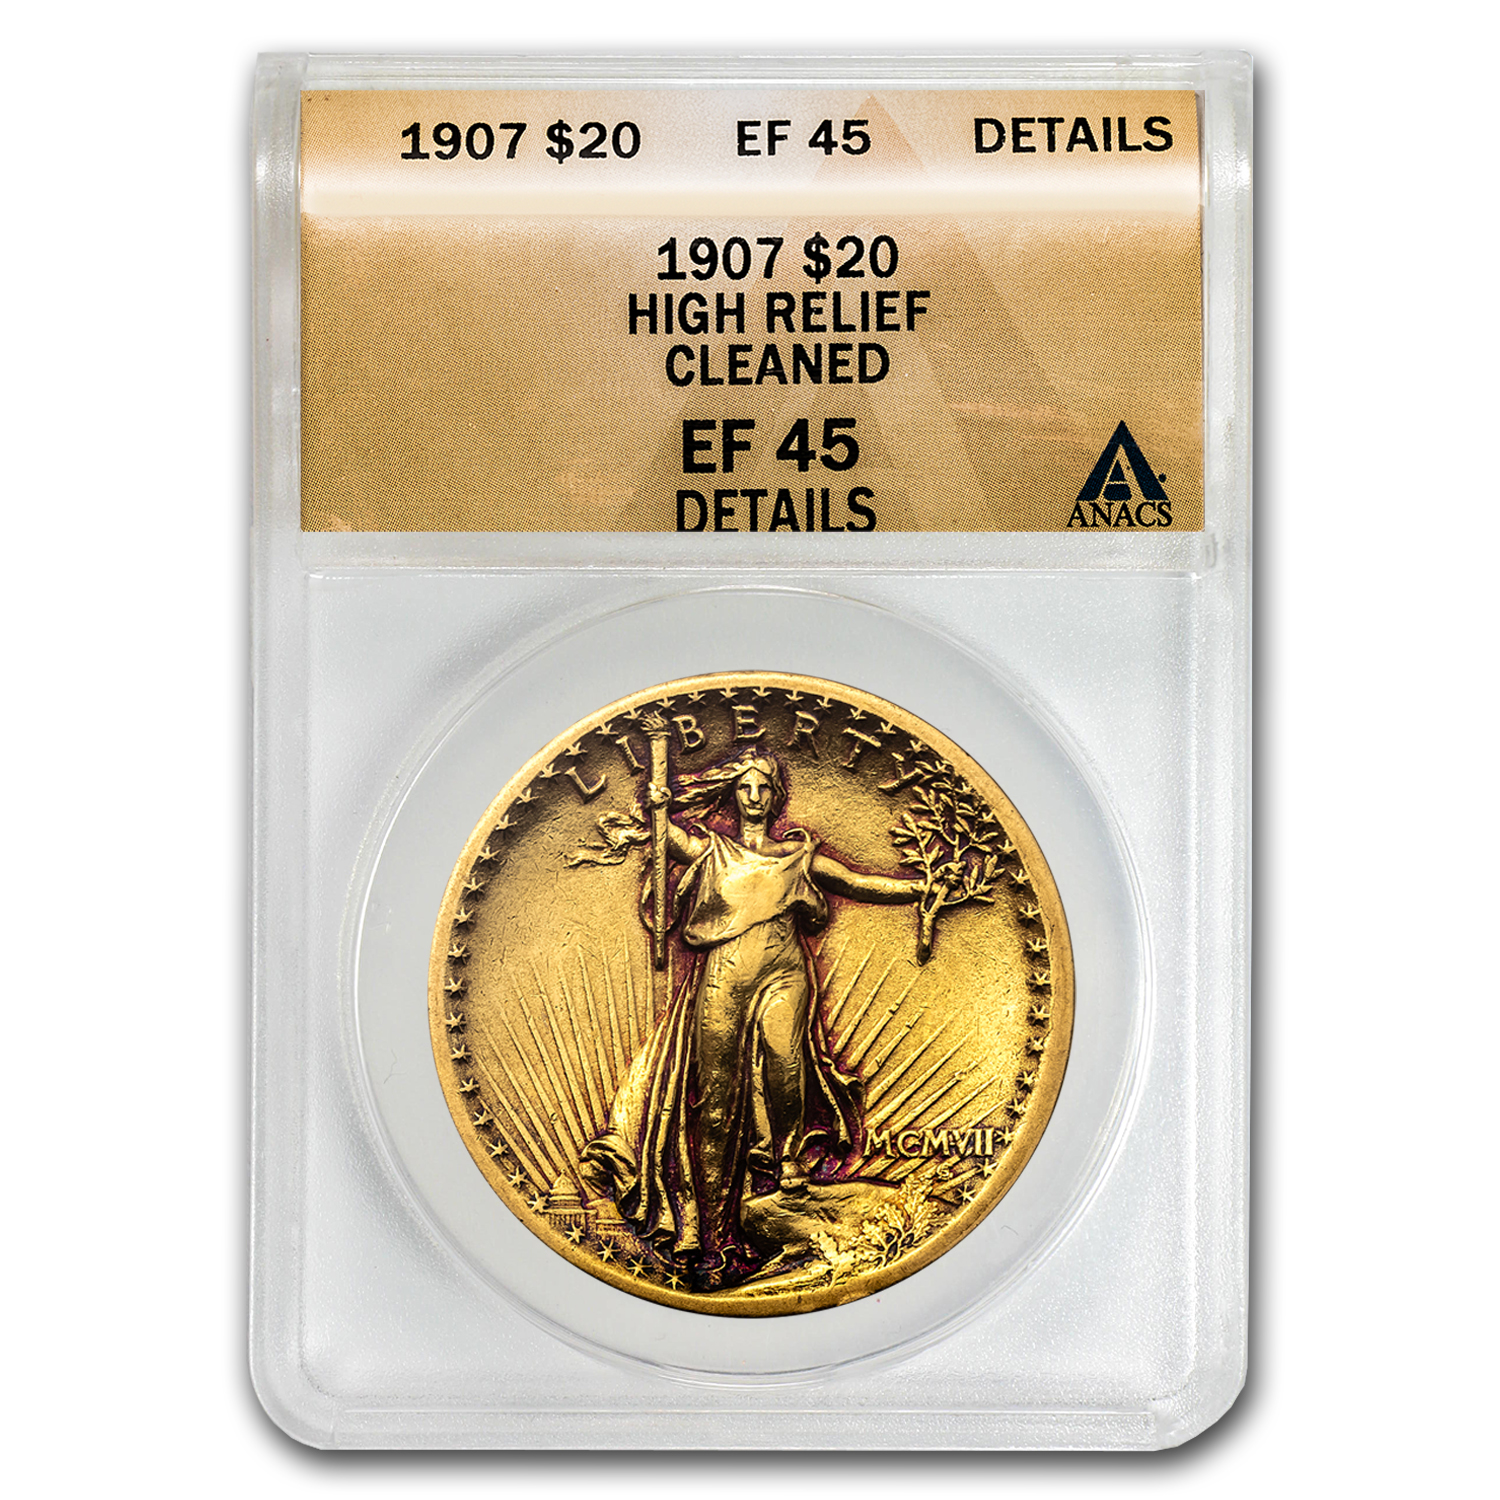 1907 $20 St. Gaudens Gold High Relief XF-45 Details ANACS (Clnd)